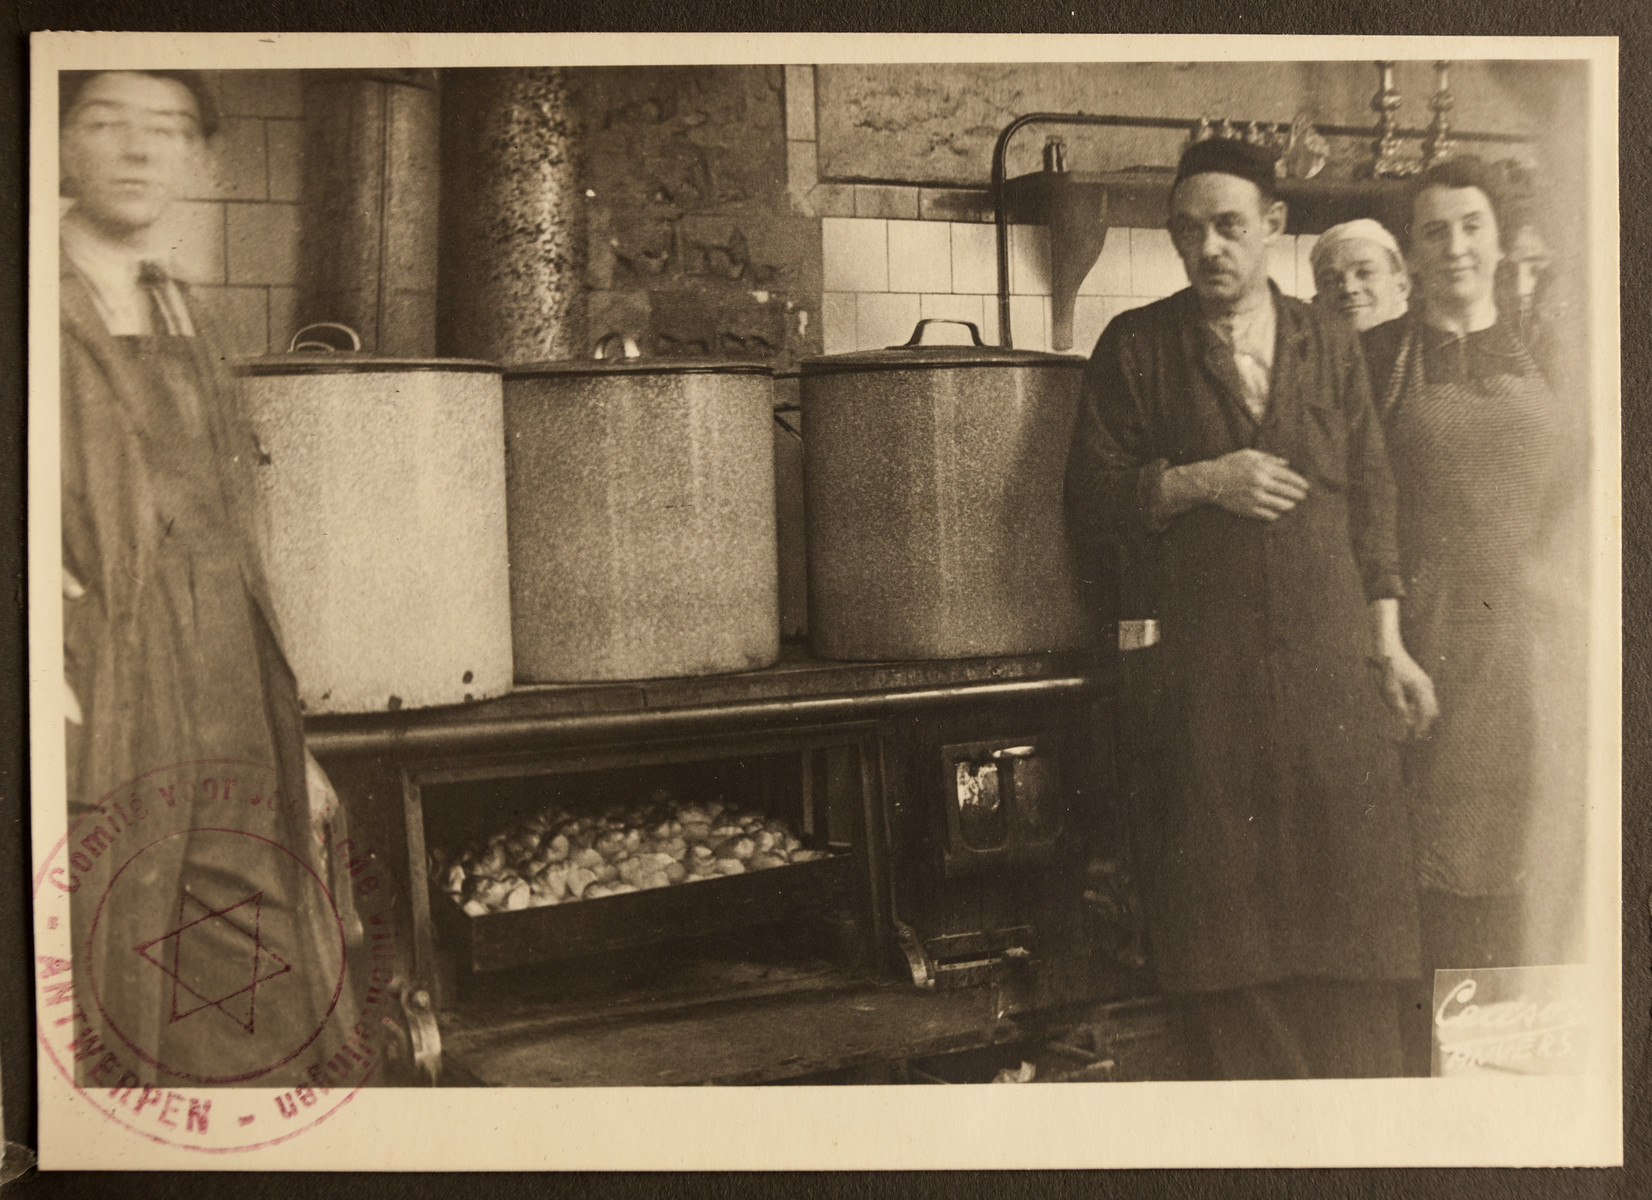 The kitchen staff of the Jewish Refugee Aid Committee of Antwerp stands by three large pots.